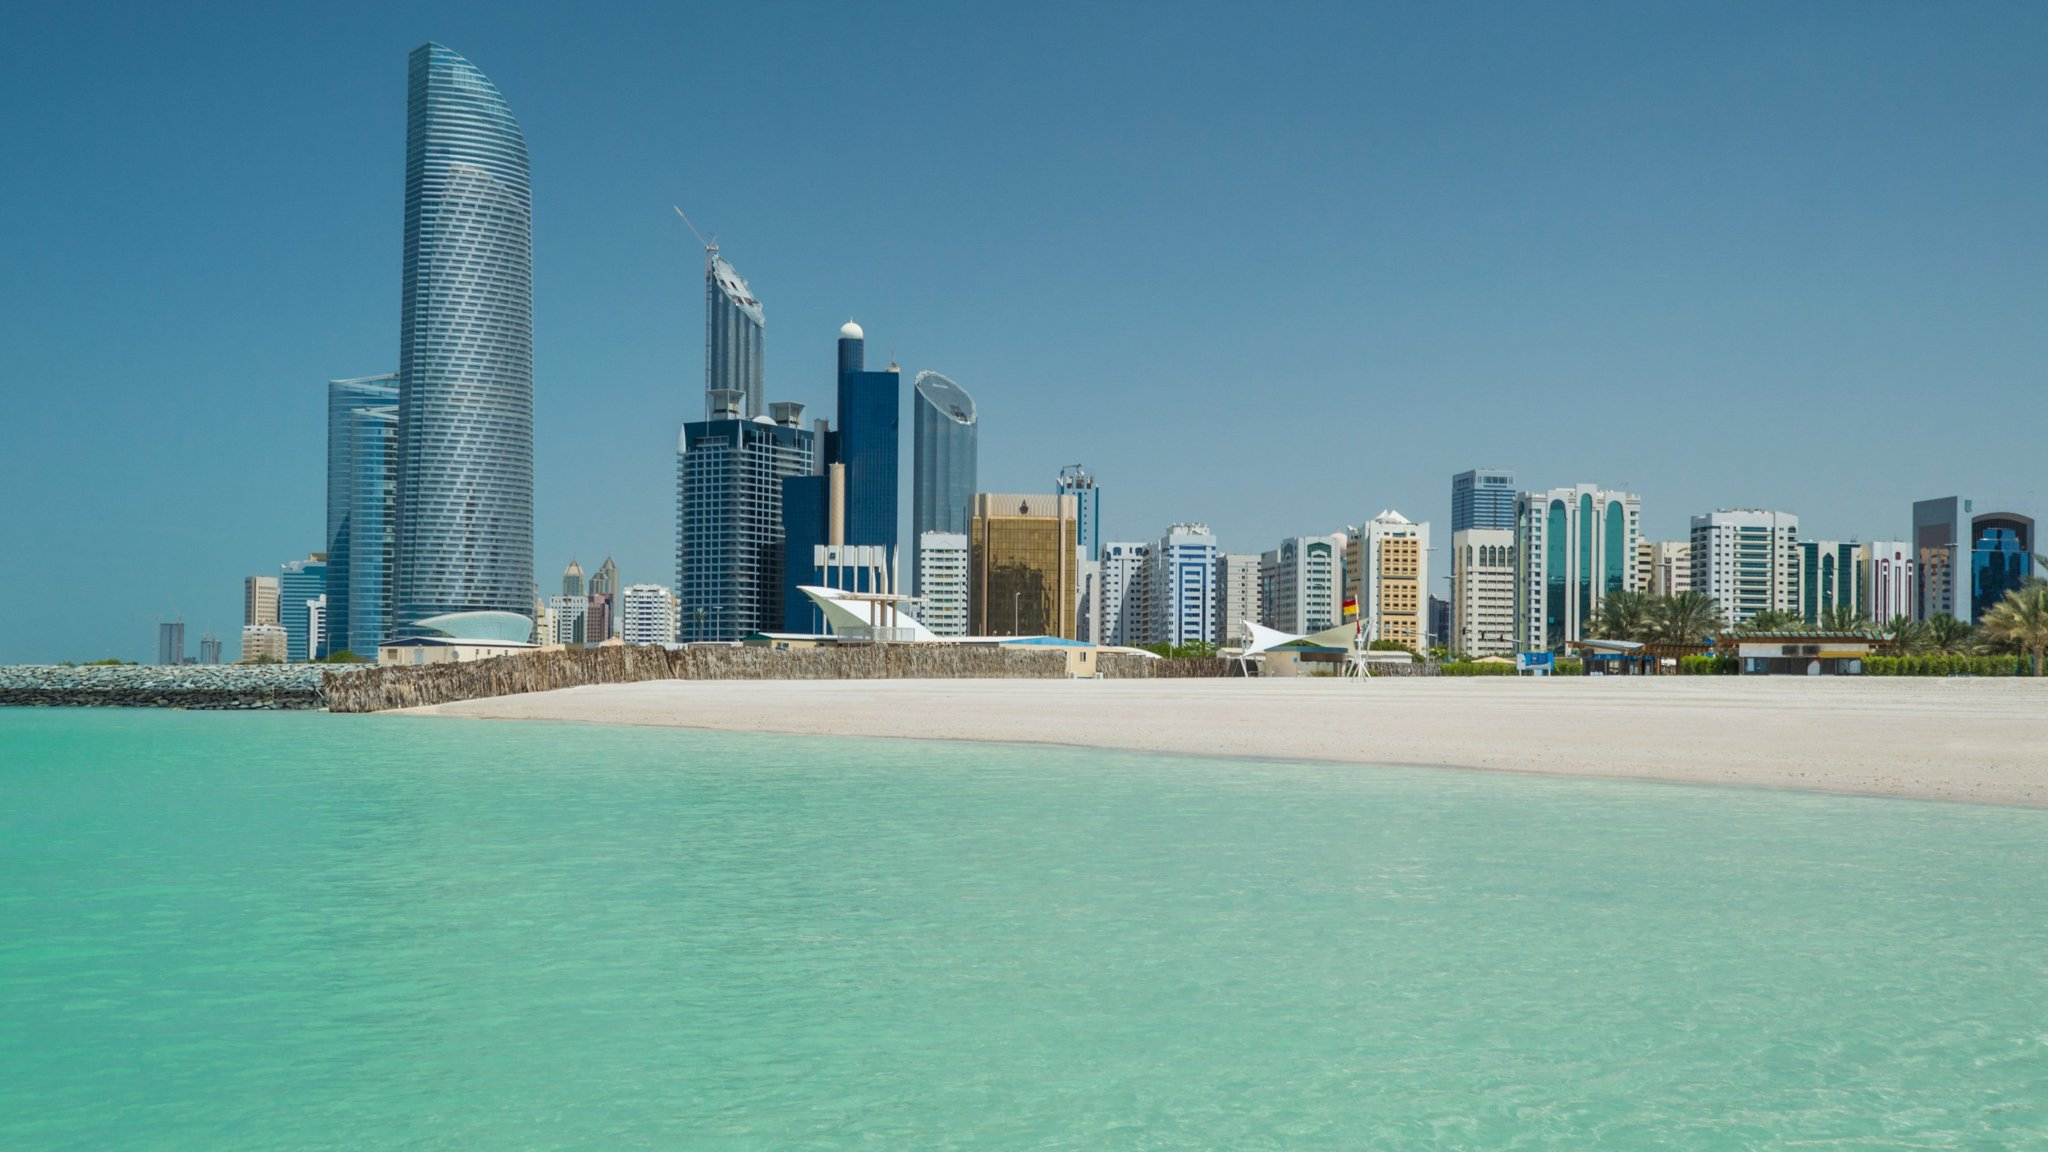 Expats take flight as Abu Dhabi tightens purse strings